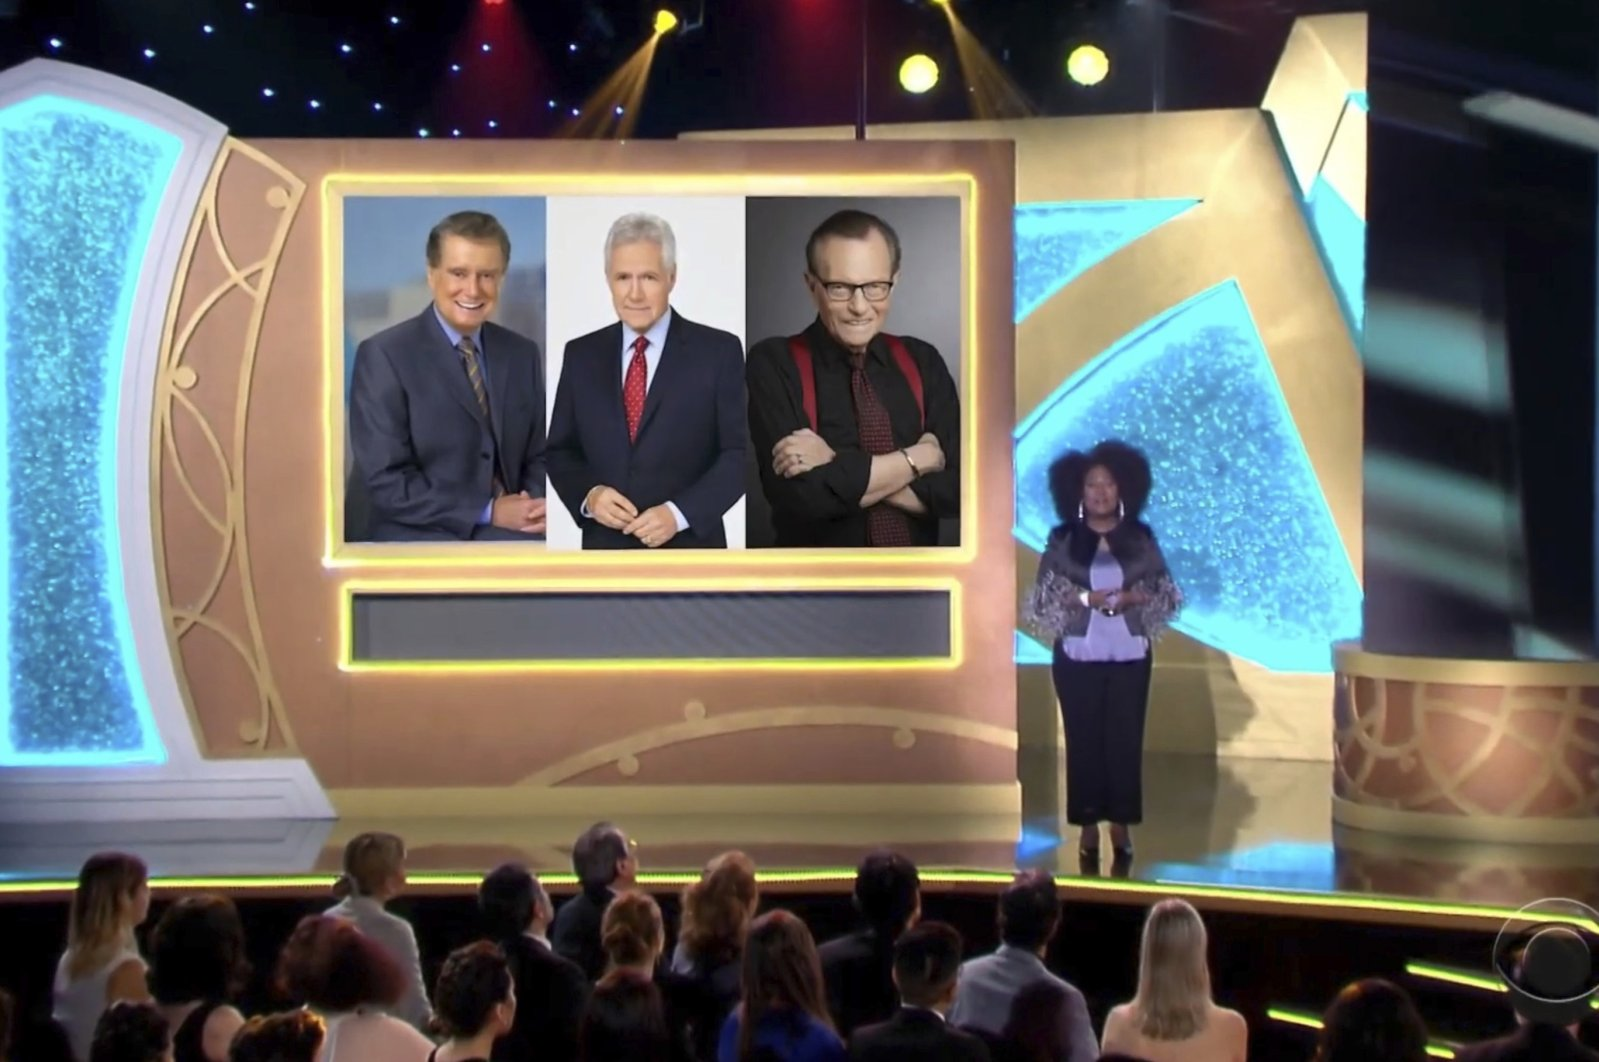 Host Sheryl Underwood introduces a tribute to the late talk show hosts, pictured on screen from Regis Philbin (L), Alex Trebek (C) and Larry King during the 48th Daytime Emmy Awards, June 25, 2021. (Daytime Emmys via AP)